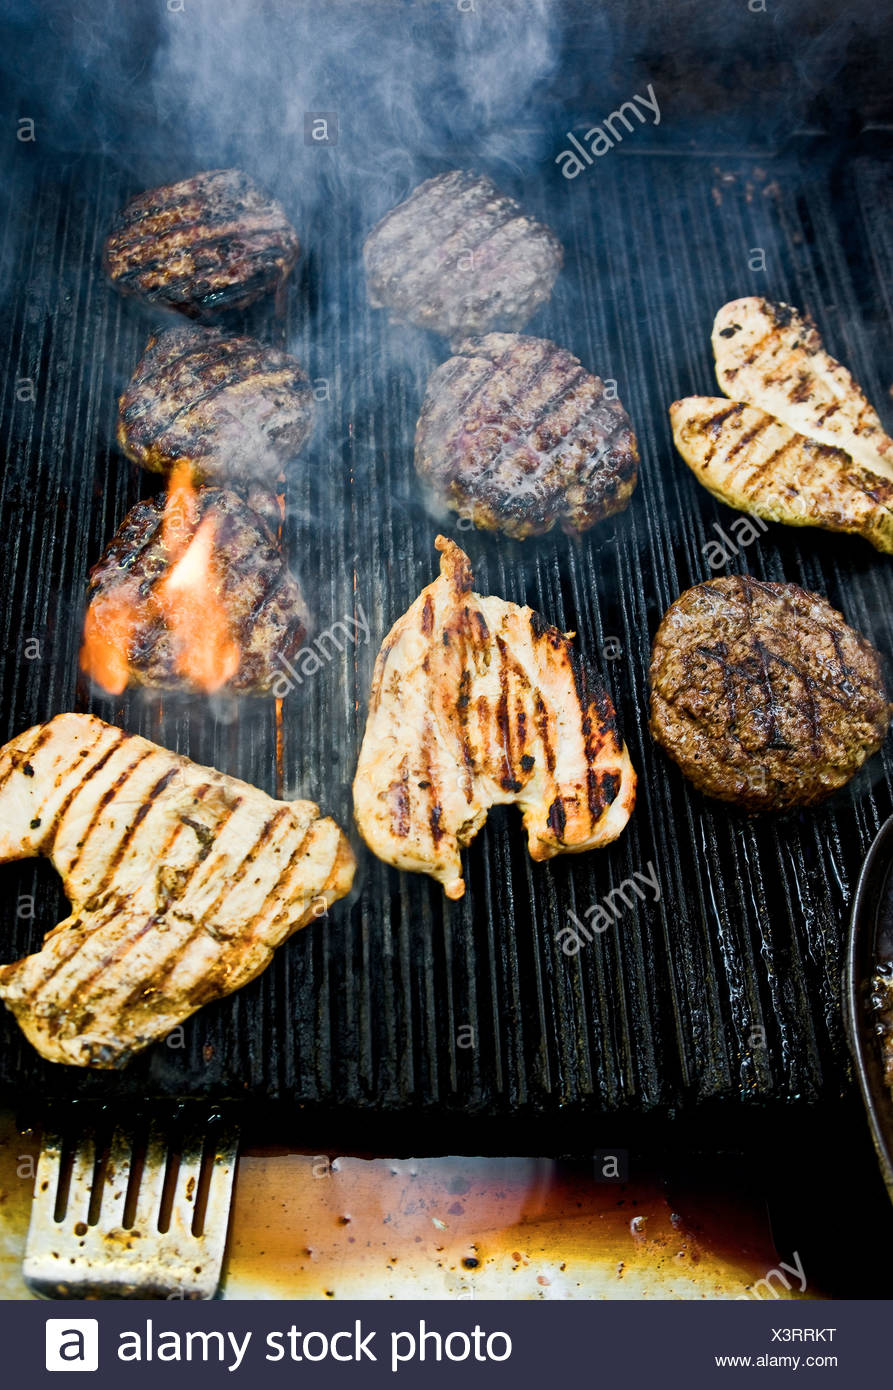 Meat cooking on grill - Stock Image